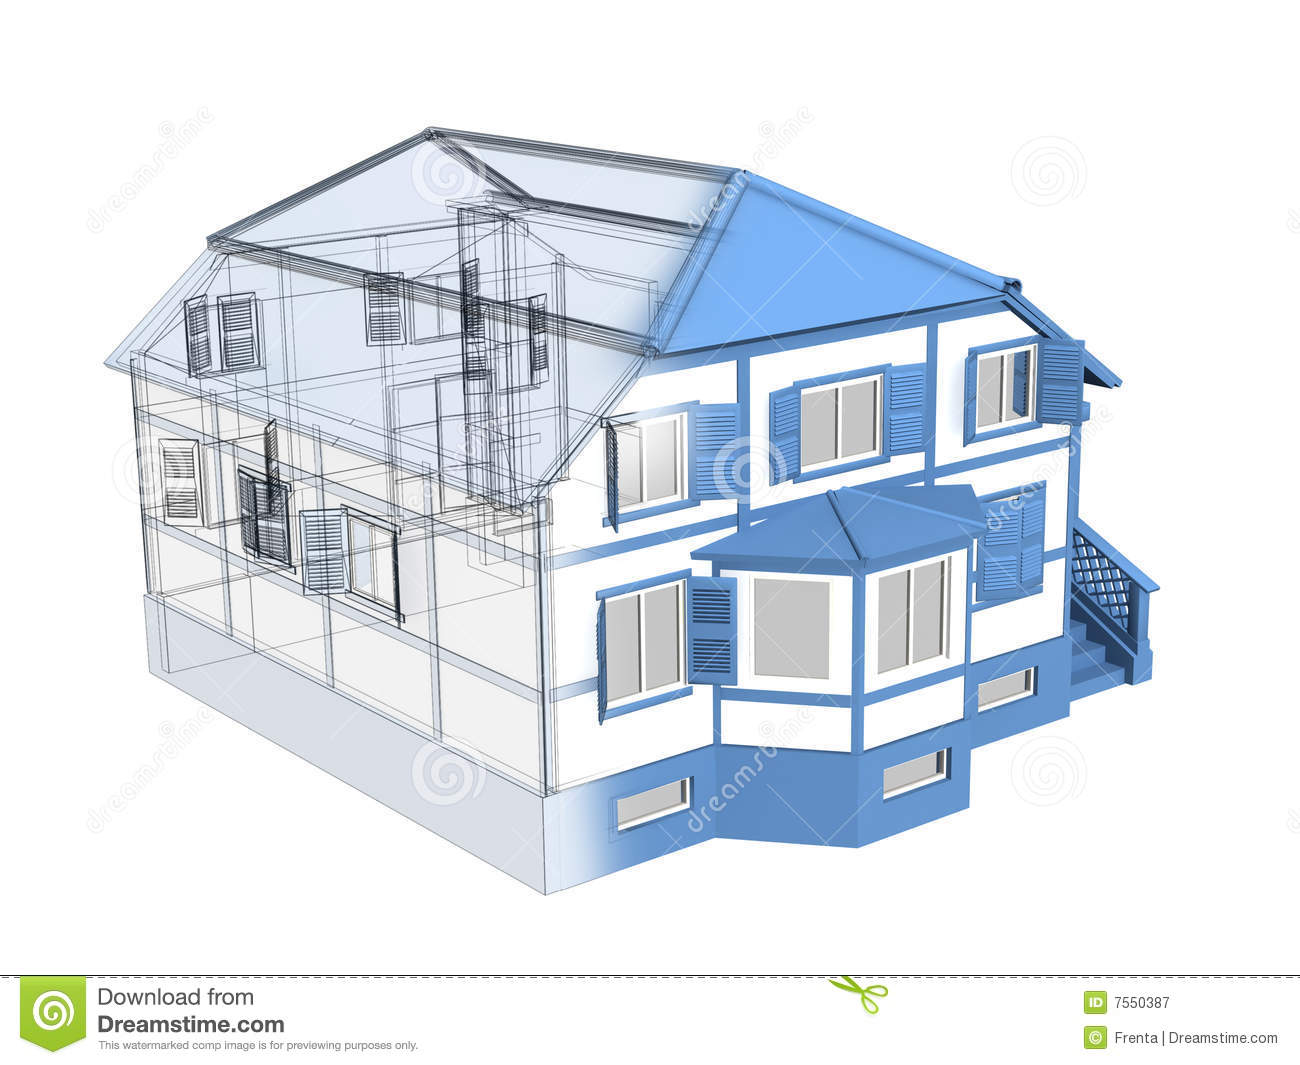 Croquis 3d d 39 une maison photographie stock libre de droits Drawing modern houses